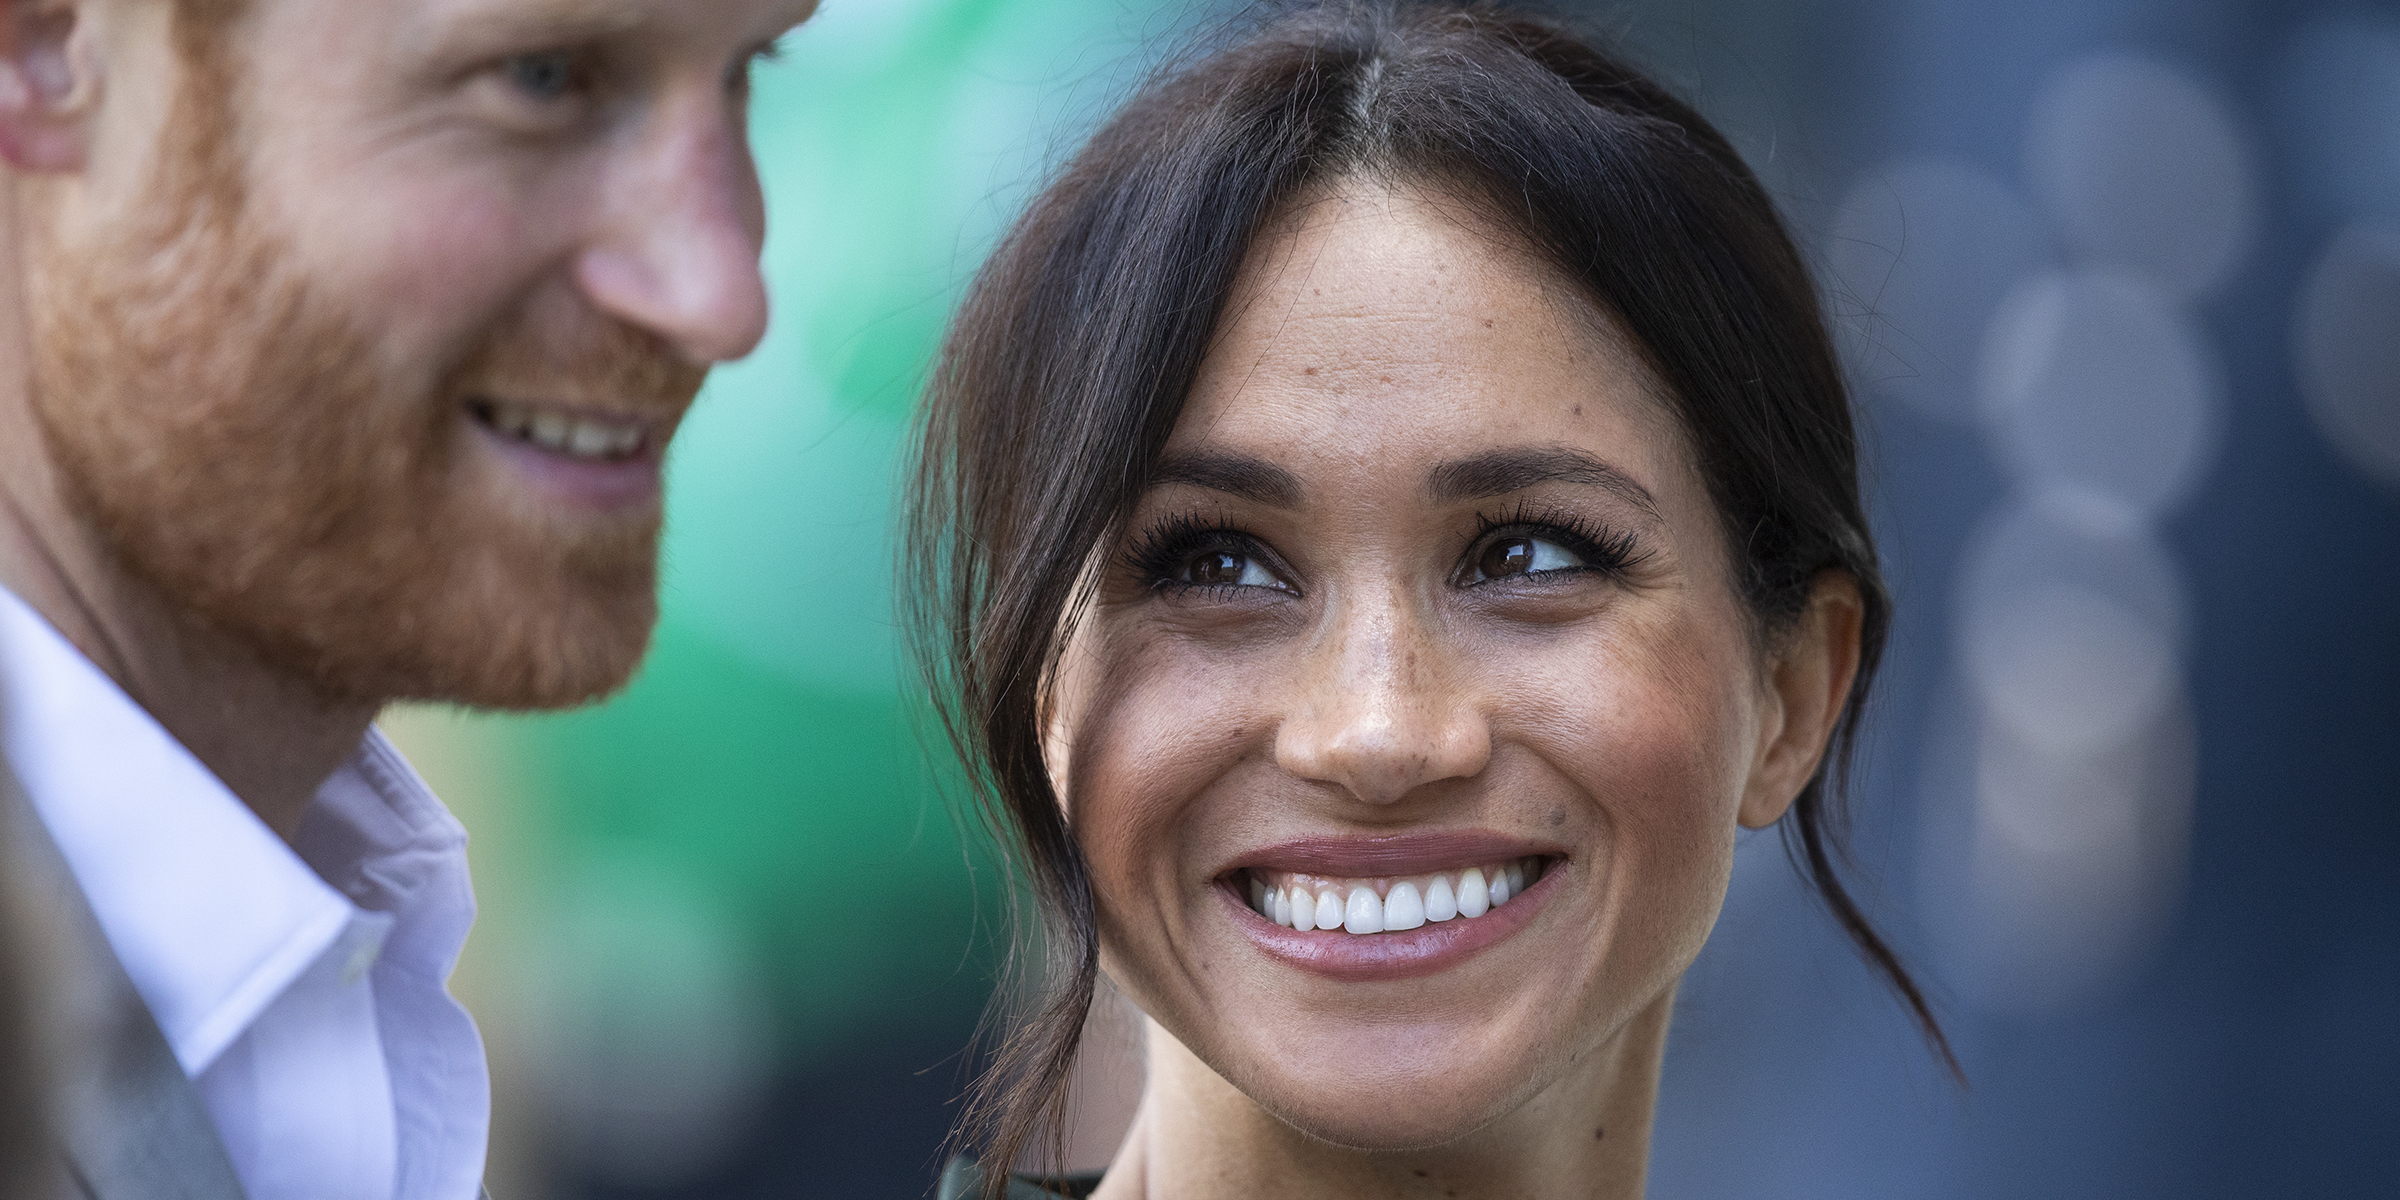 Baby name predictions for Prince Harry and Meghan Markle